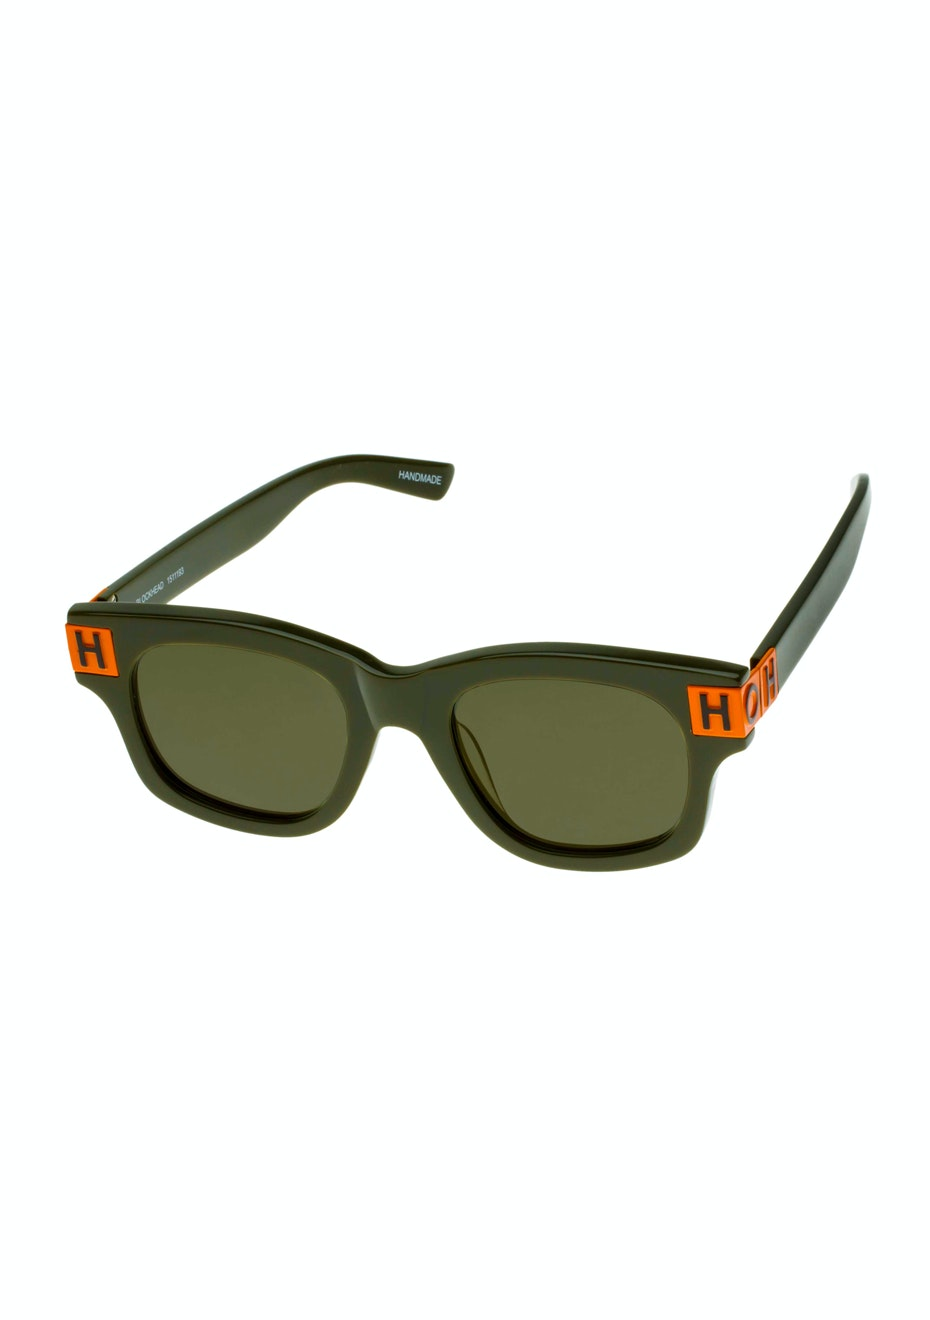 House Of Holland - Blockhead 1511193 - Army Green